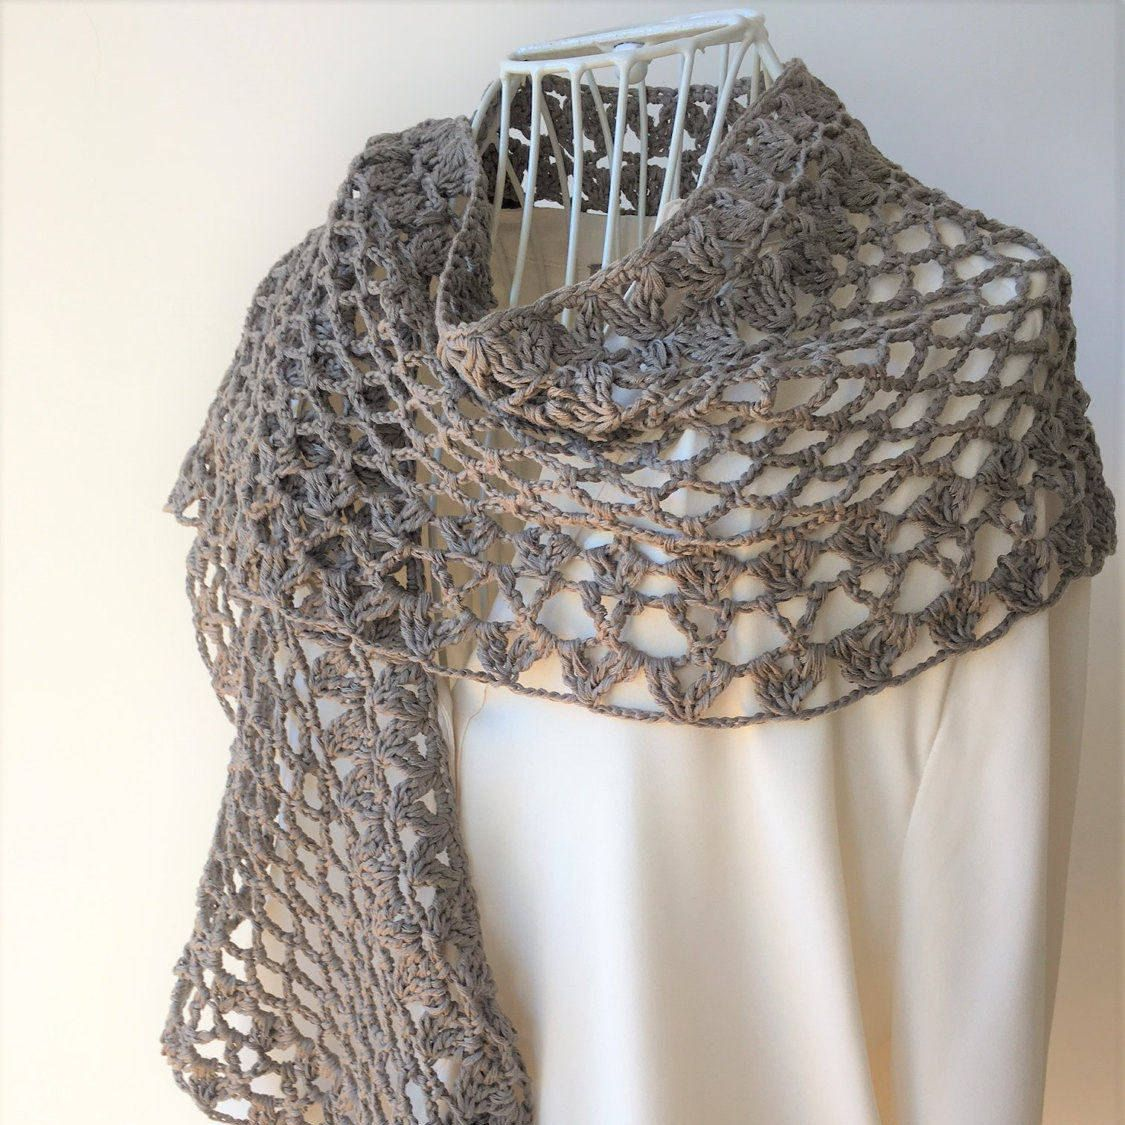 Cotton Shawl New Year Gift Baktus Scarf In Organic Linen Blend